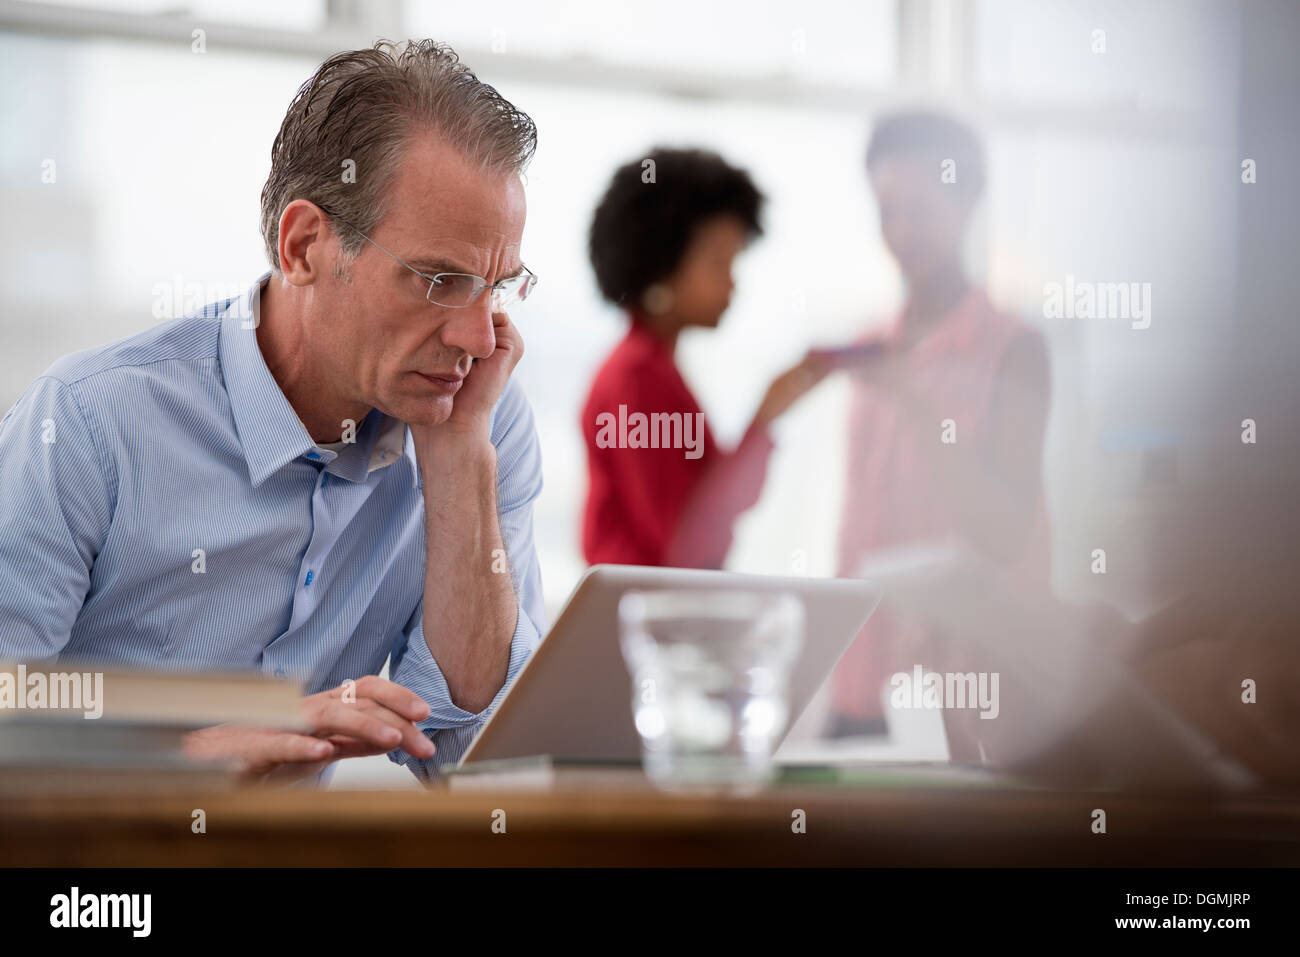 Office life. A man seated at a computer laptop leaning on one arm, and two women in the background. - Stock Image